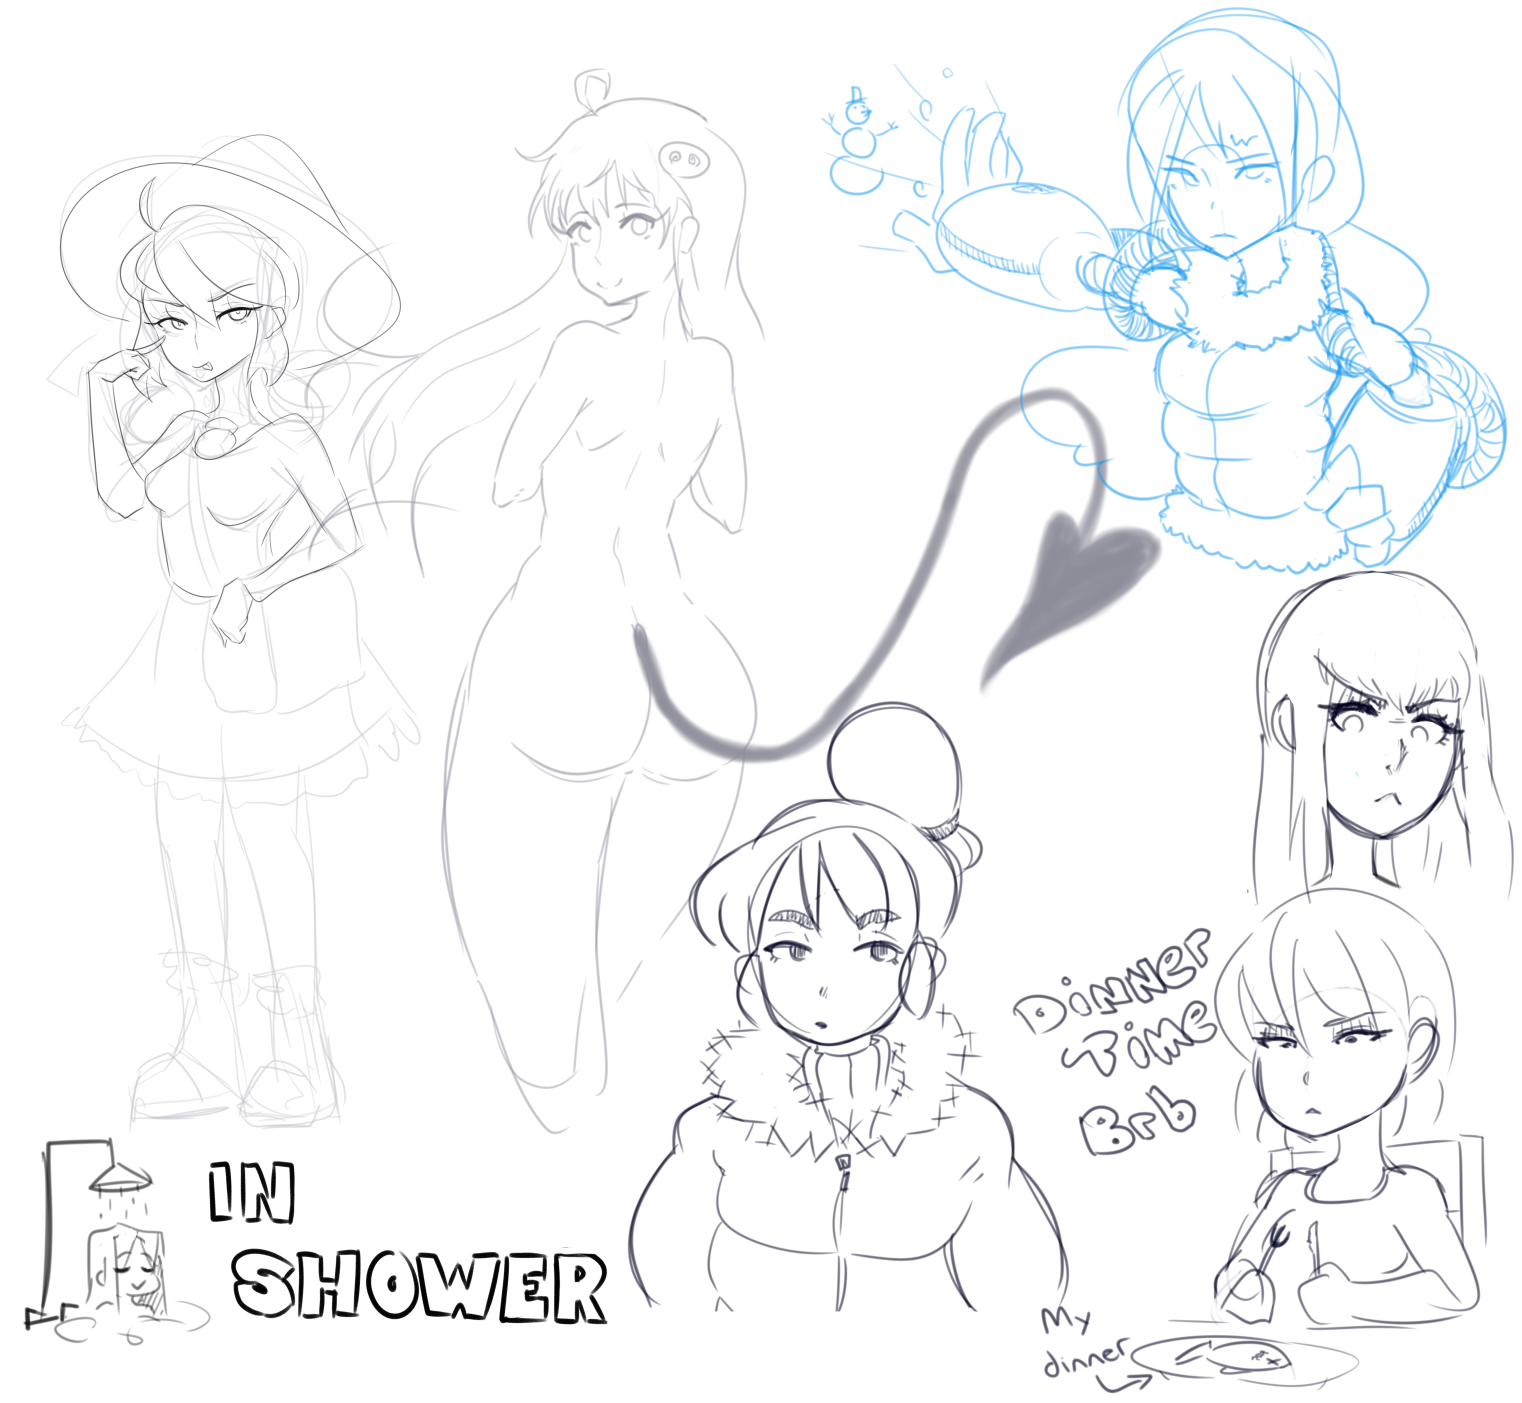 doodles from stream 2 revenge of the incomplete draws